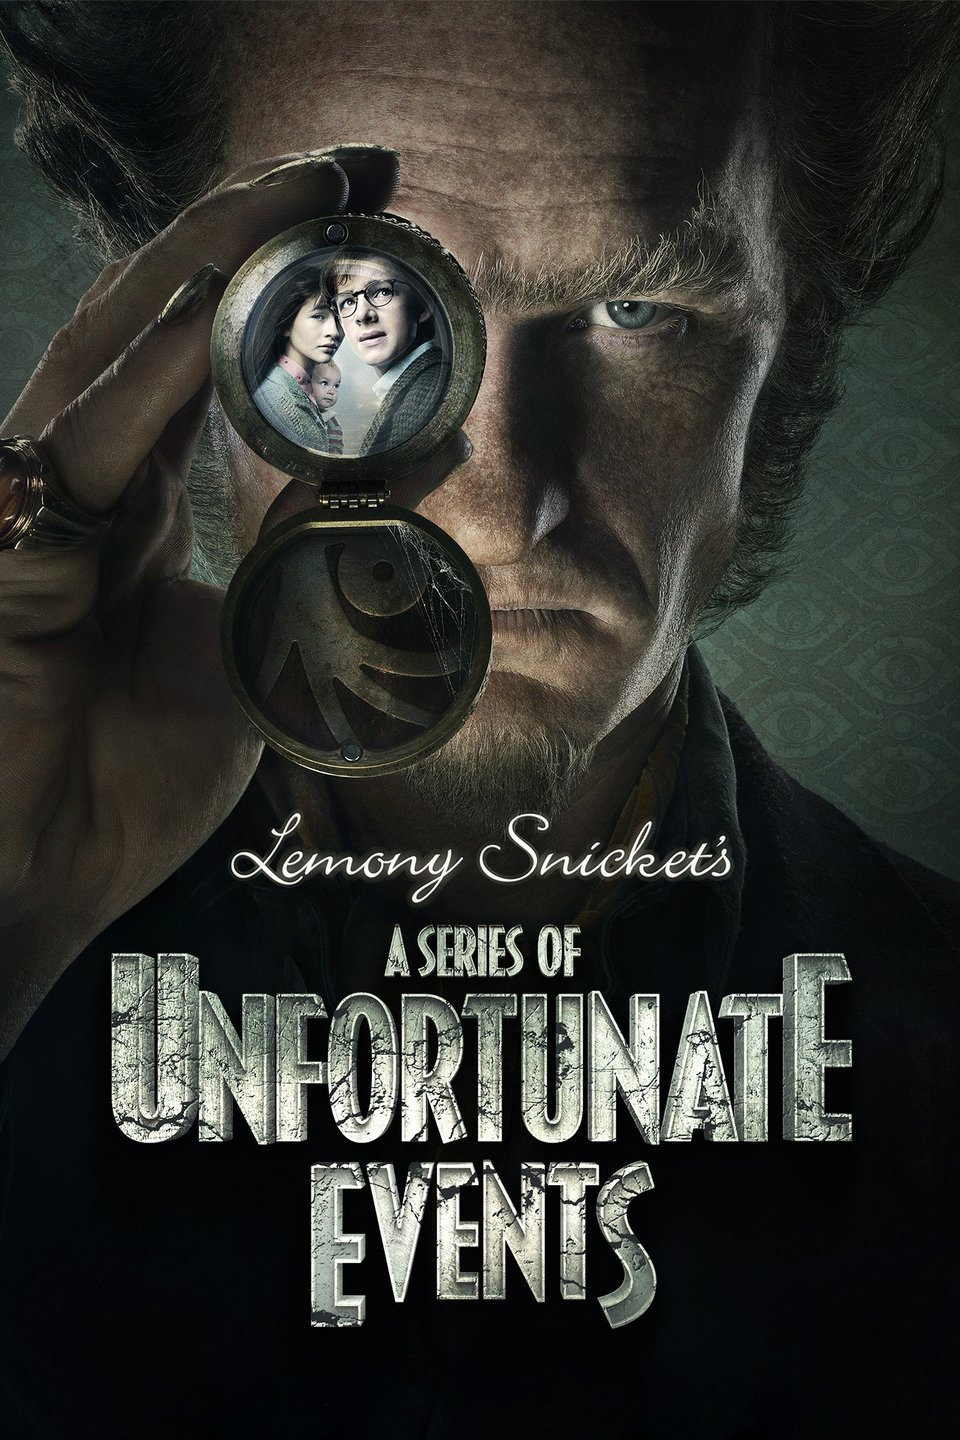 Promotional poster for A Series of Unfortunate Events